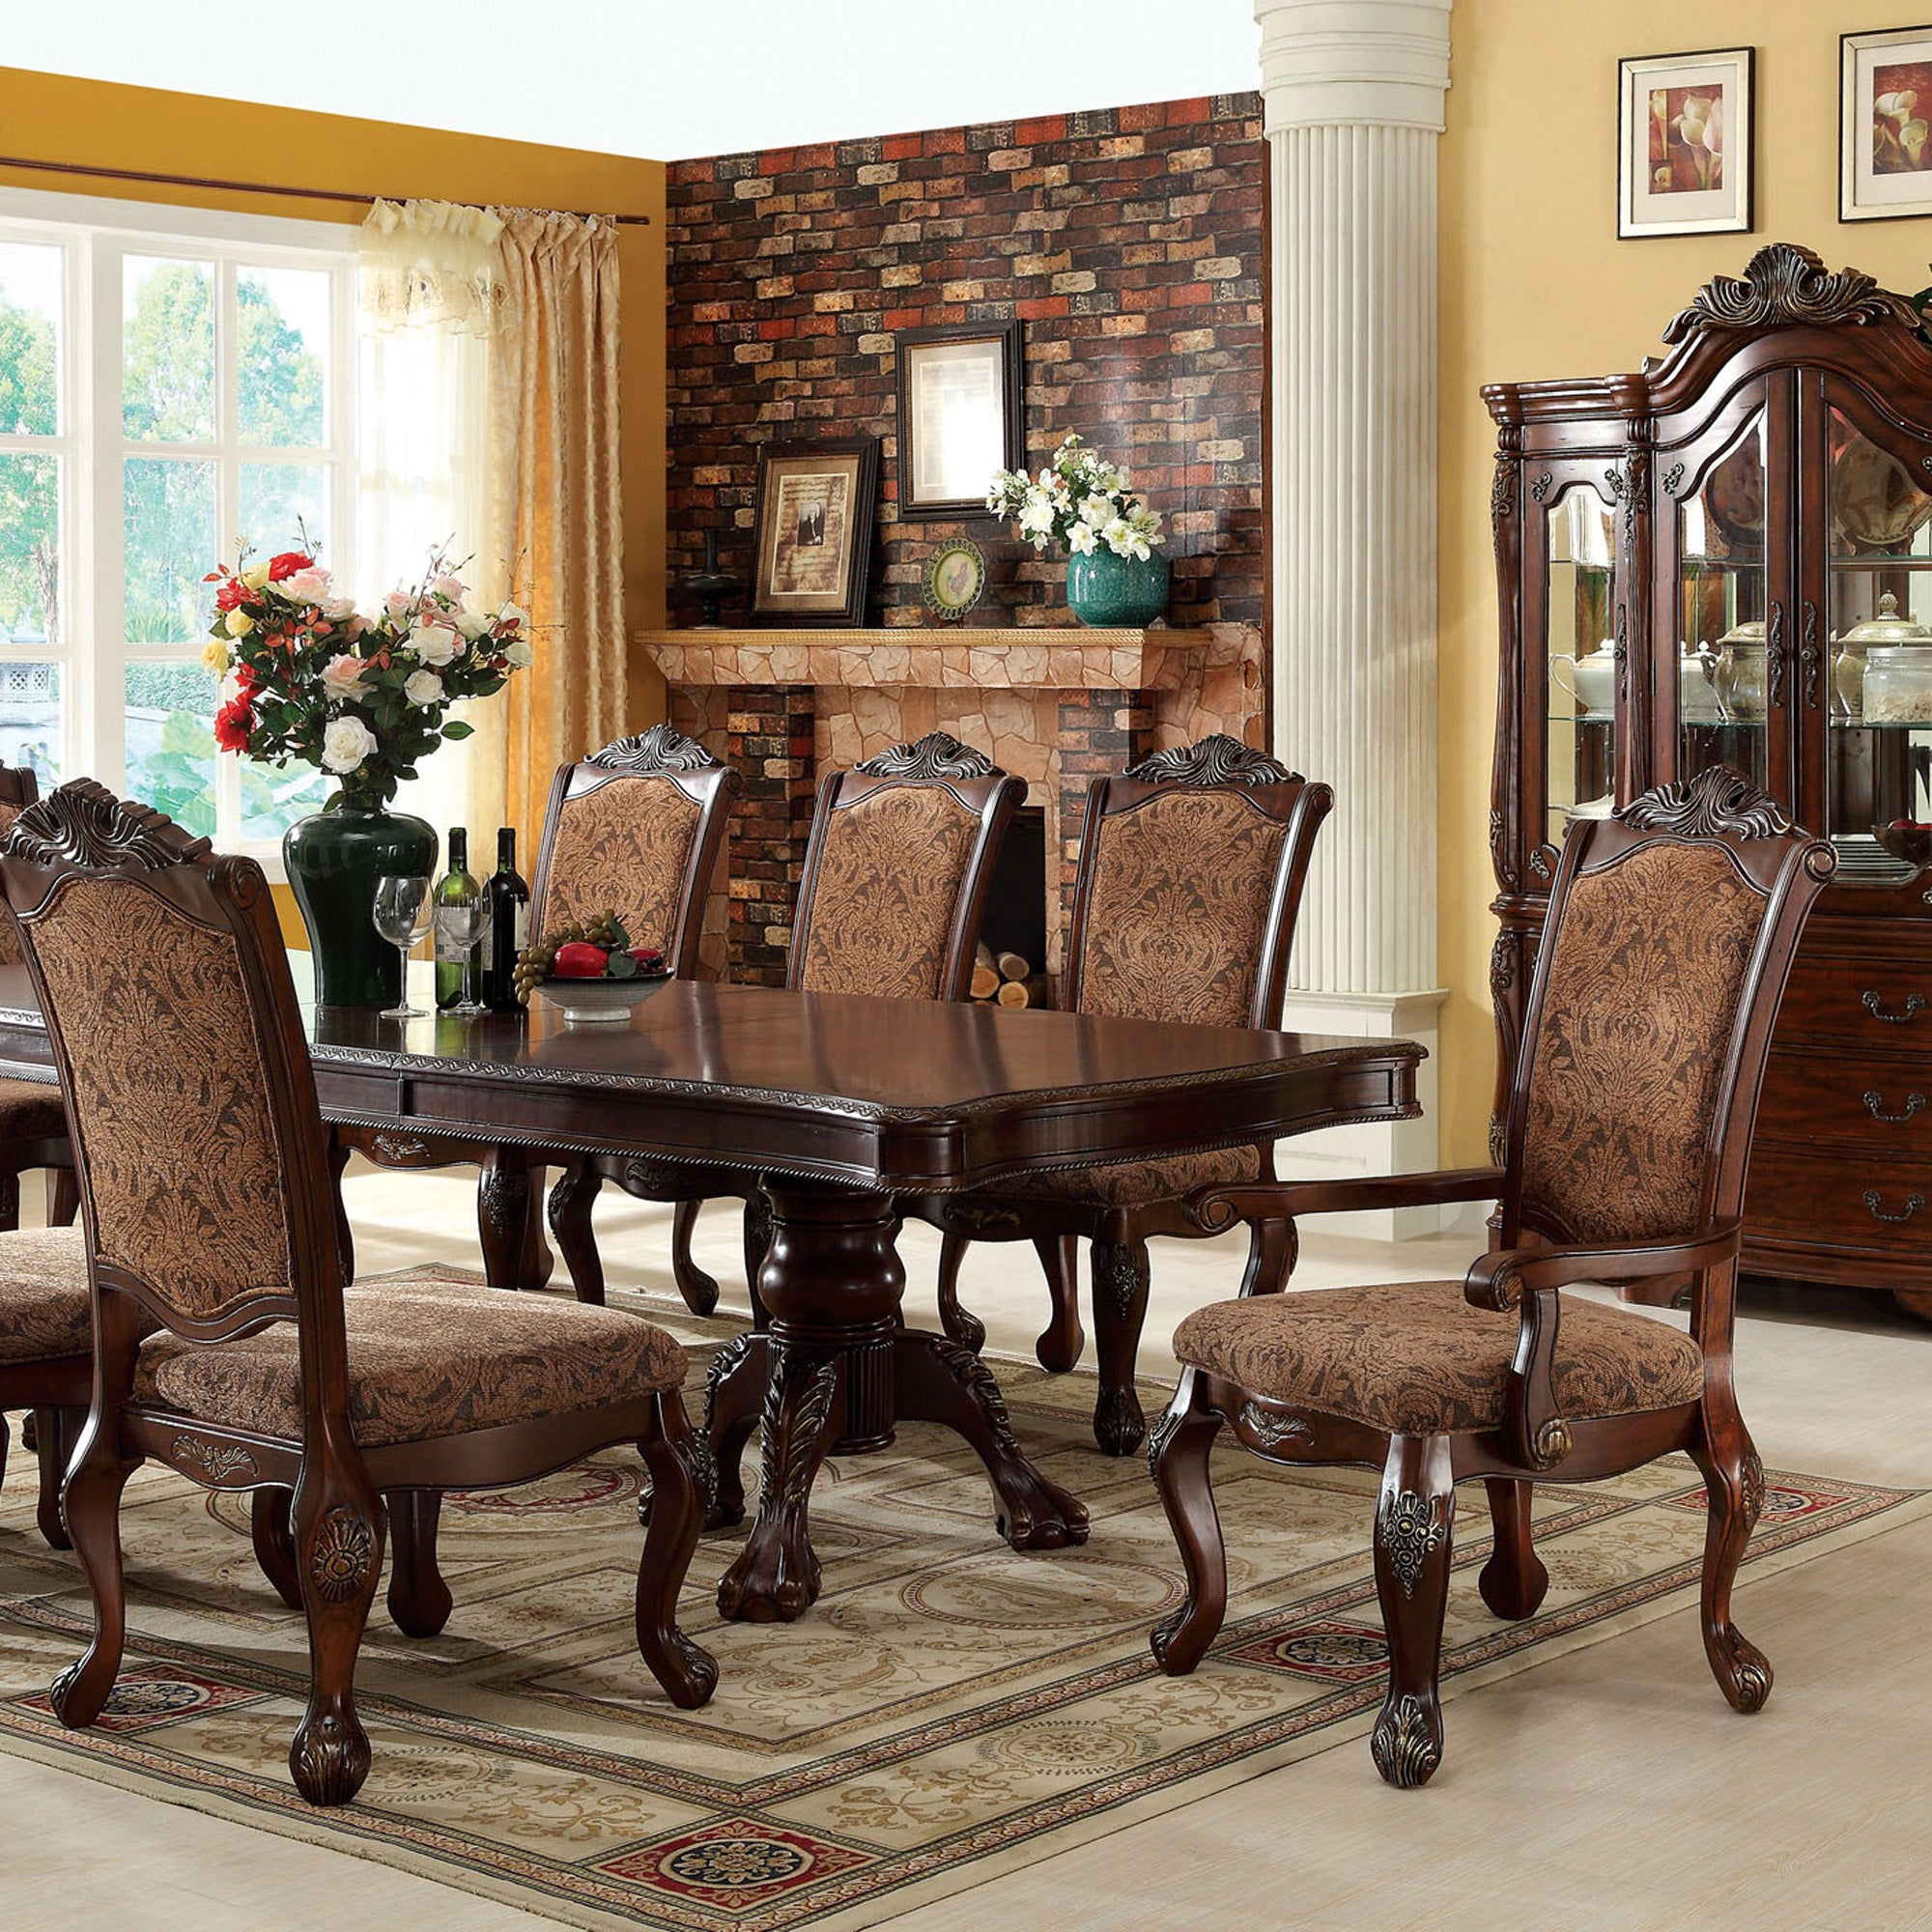 83d4857999 Shop Eiko Traditional 15-inch Leaf Antique Cherry 9-piece Dining Set by FOA  - Free Shipping Today - Overstock - 9148592